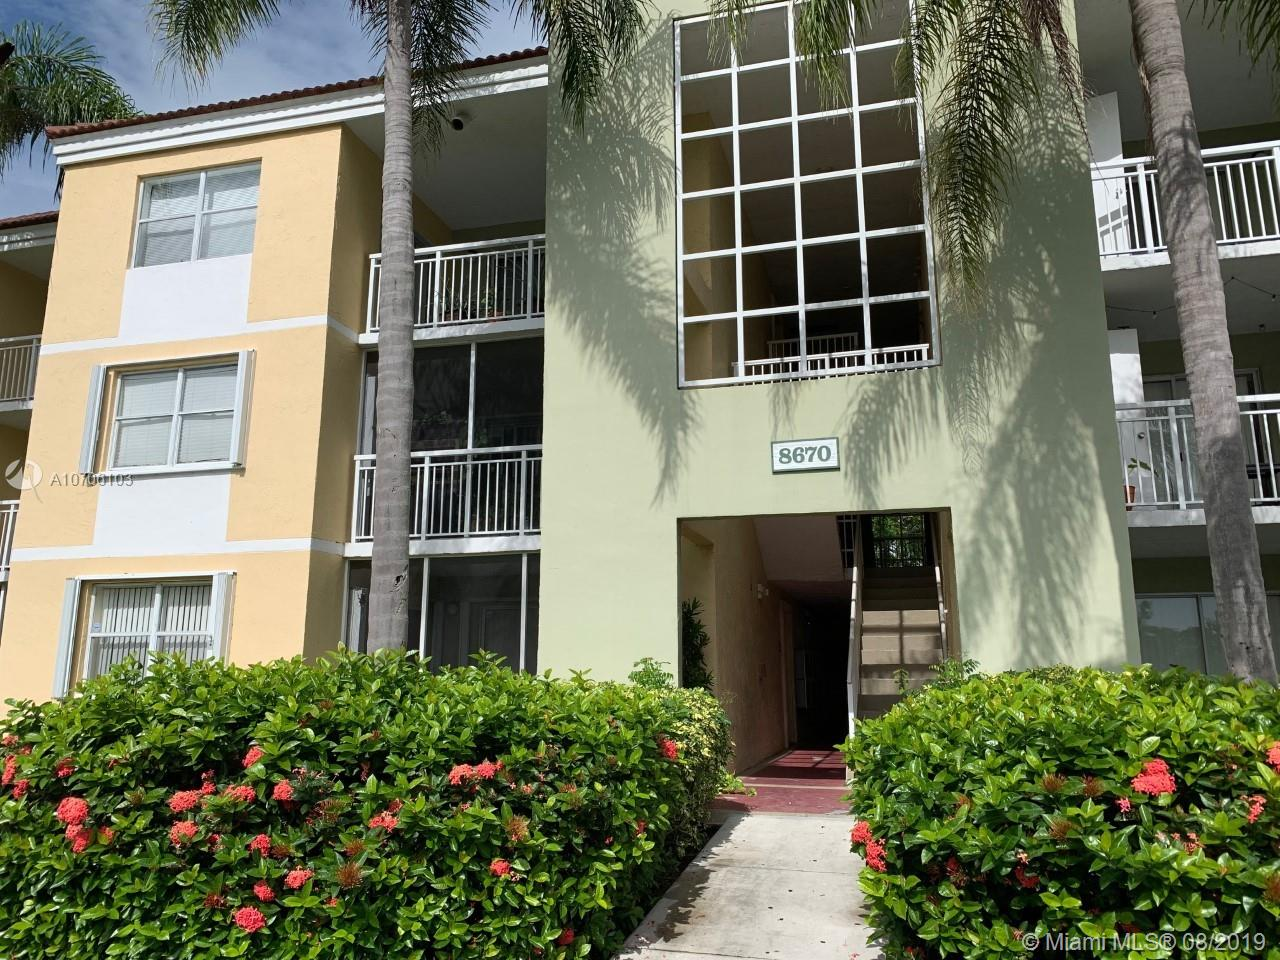 8670 SW 212 #105 For Sale A10706103, FL